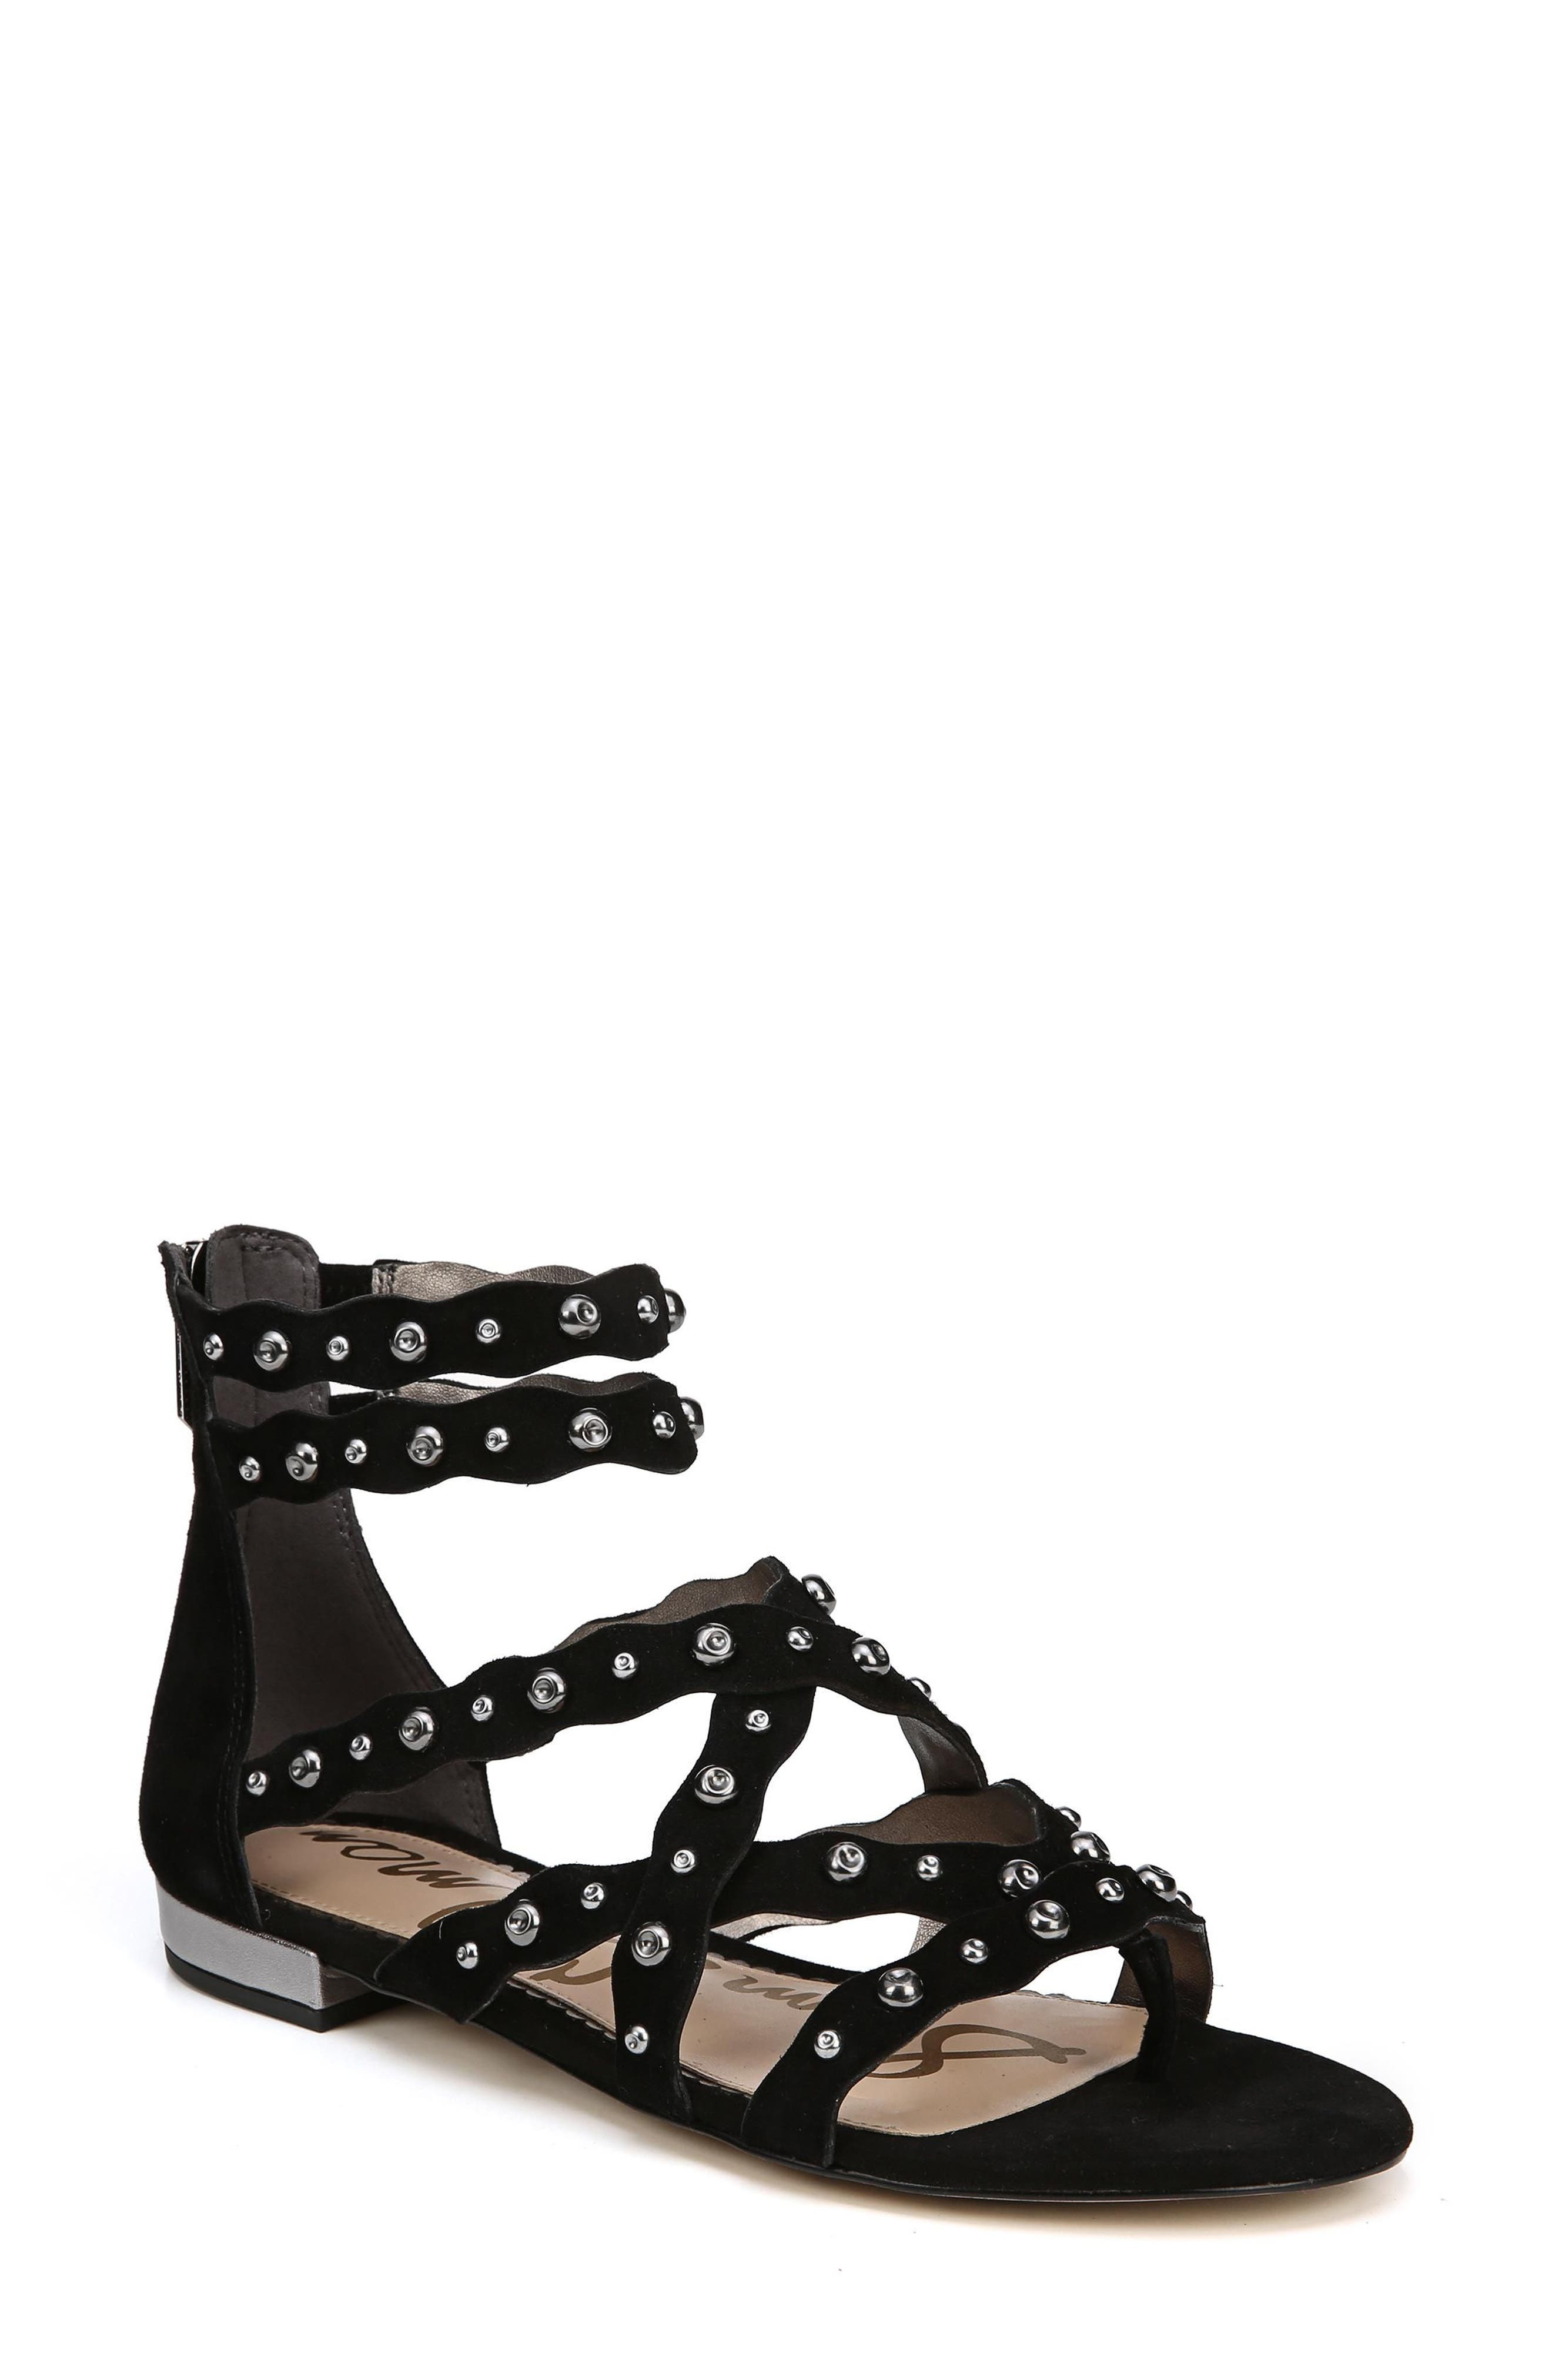 Daya Studded Sandal,                             Main thumbnail 1, color,                             Black Suede